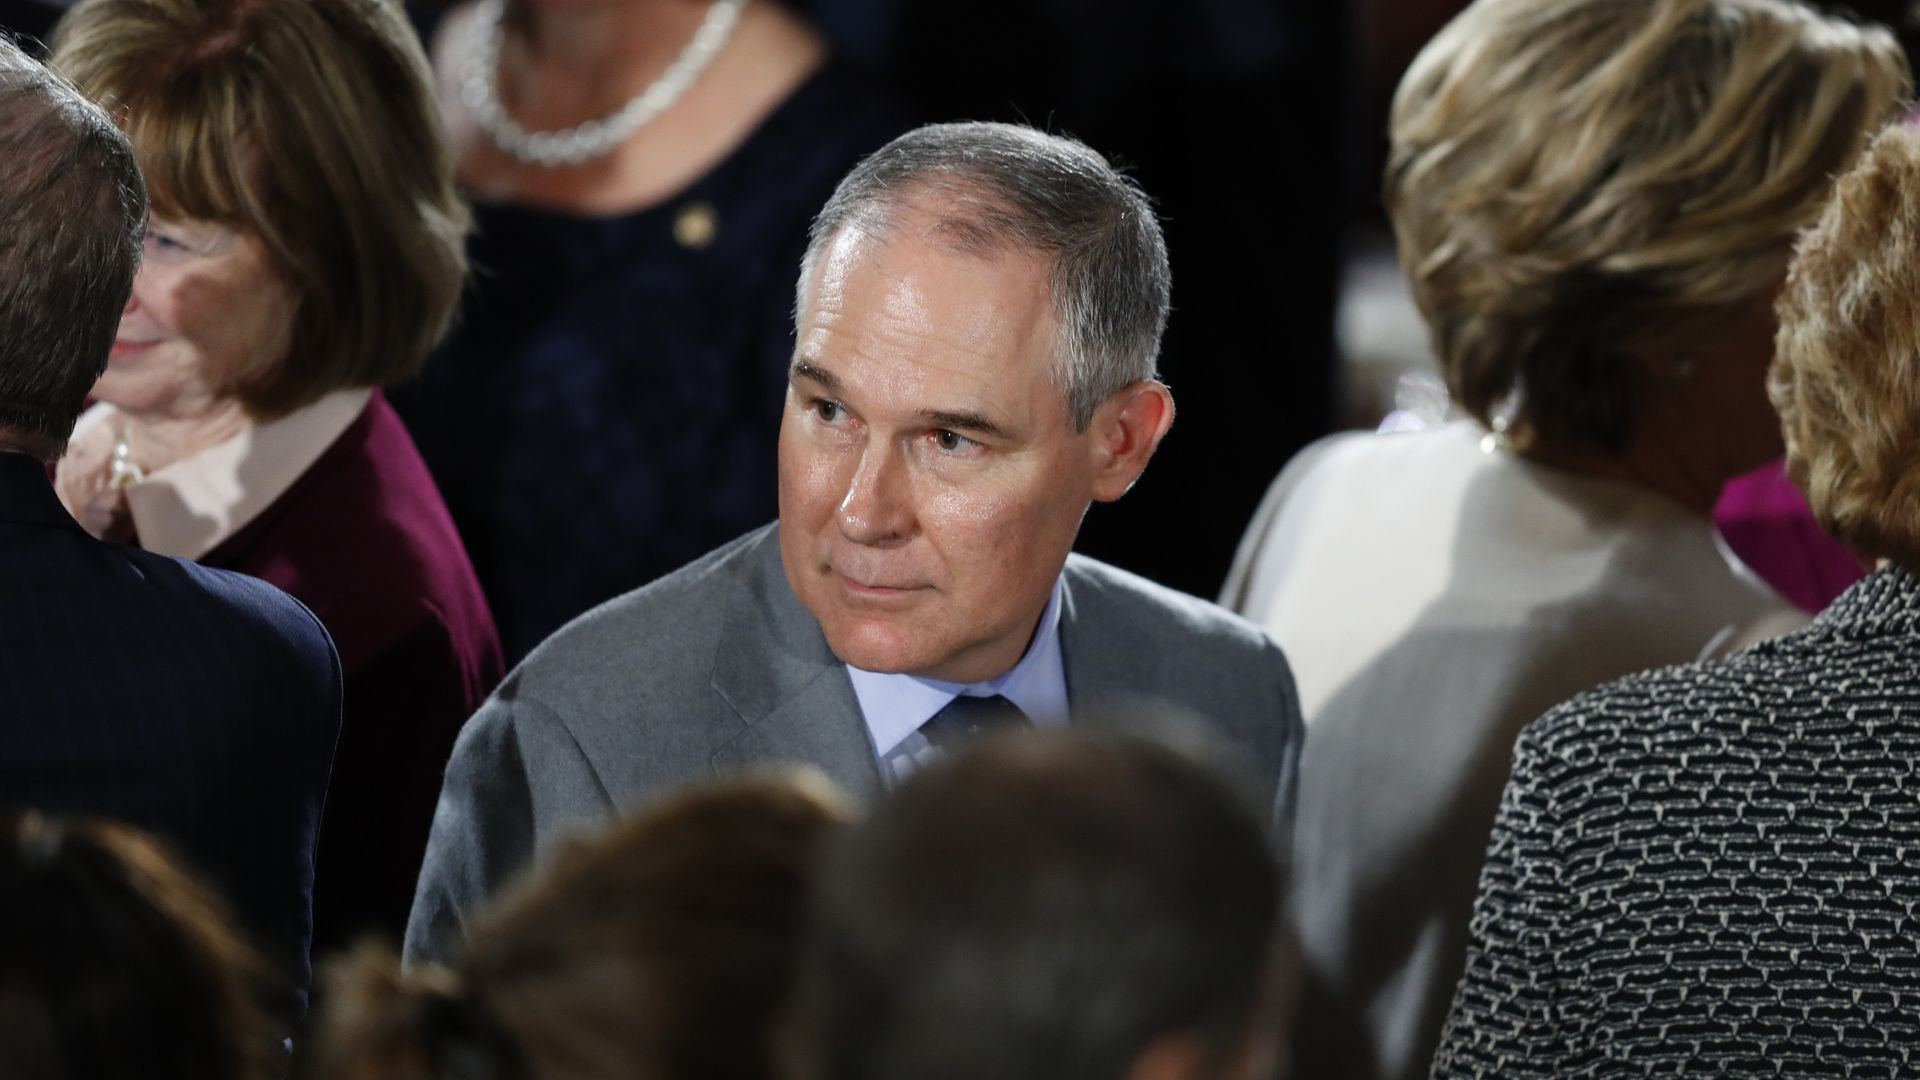 EPA administrator Scott Pruitt looks over his shoulder in a crowd